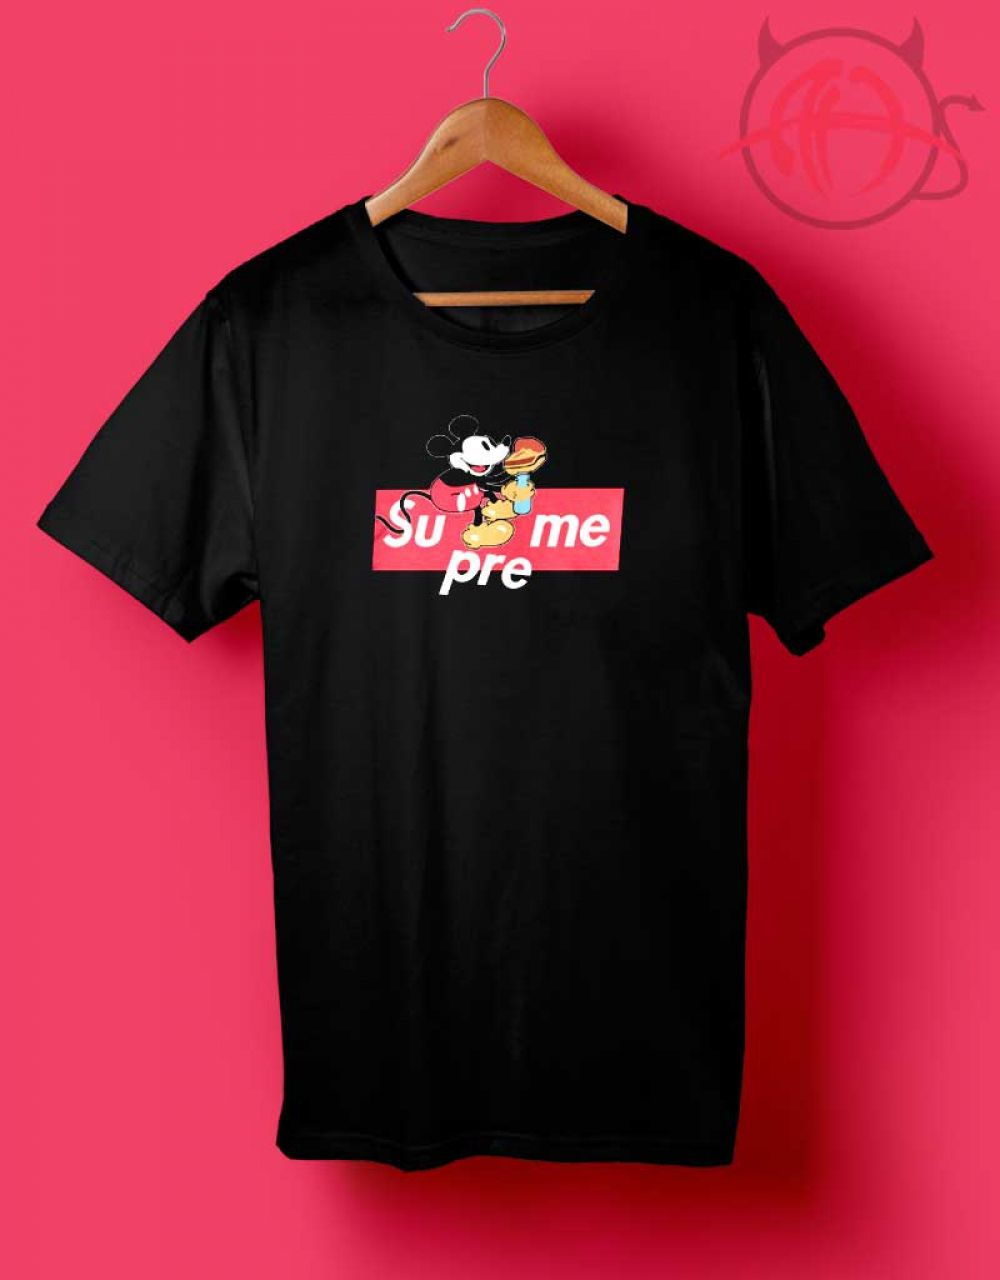 d657b5f0 Mickey Mouse Box Logo Supreme T Shirt $ 14.50 #Tee #Hype #Outfits #Outfit  #Hypebeast #fashion #shirt #Tees #Tops #Teen